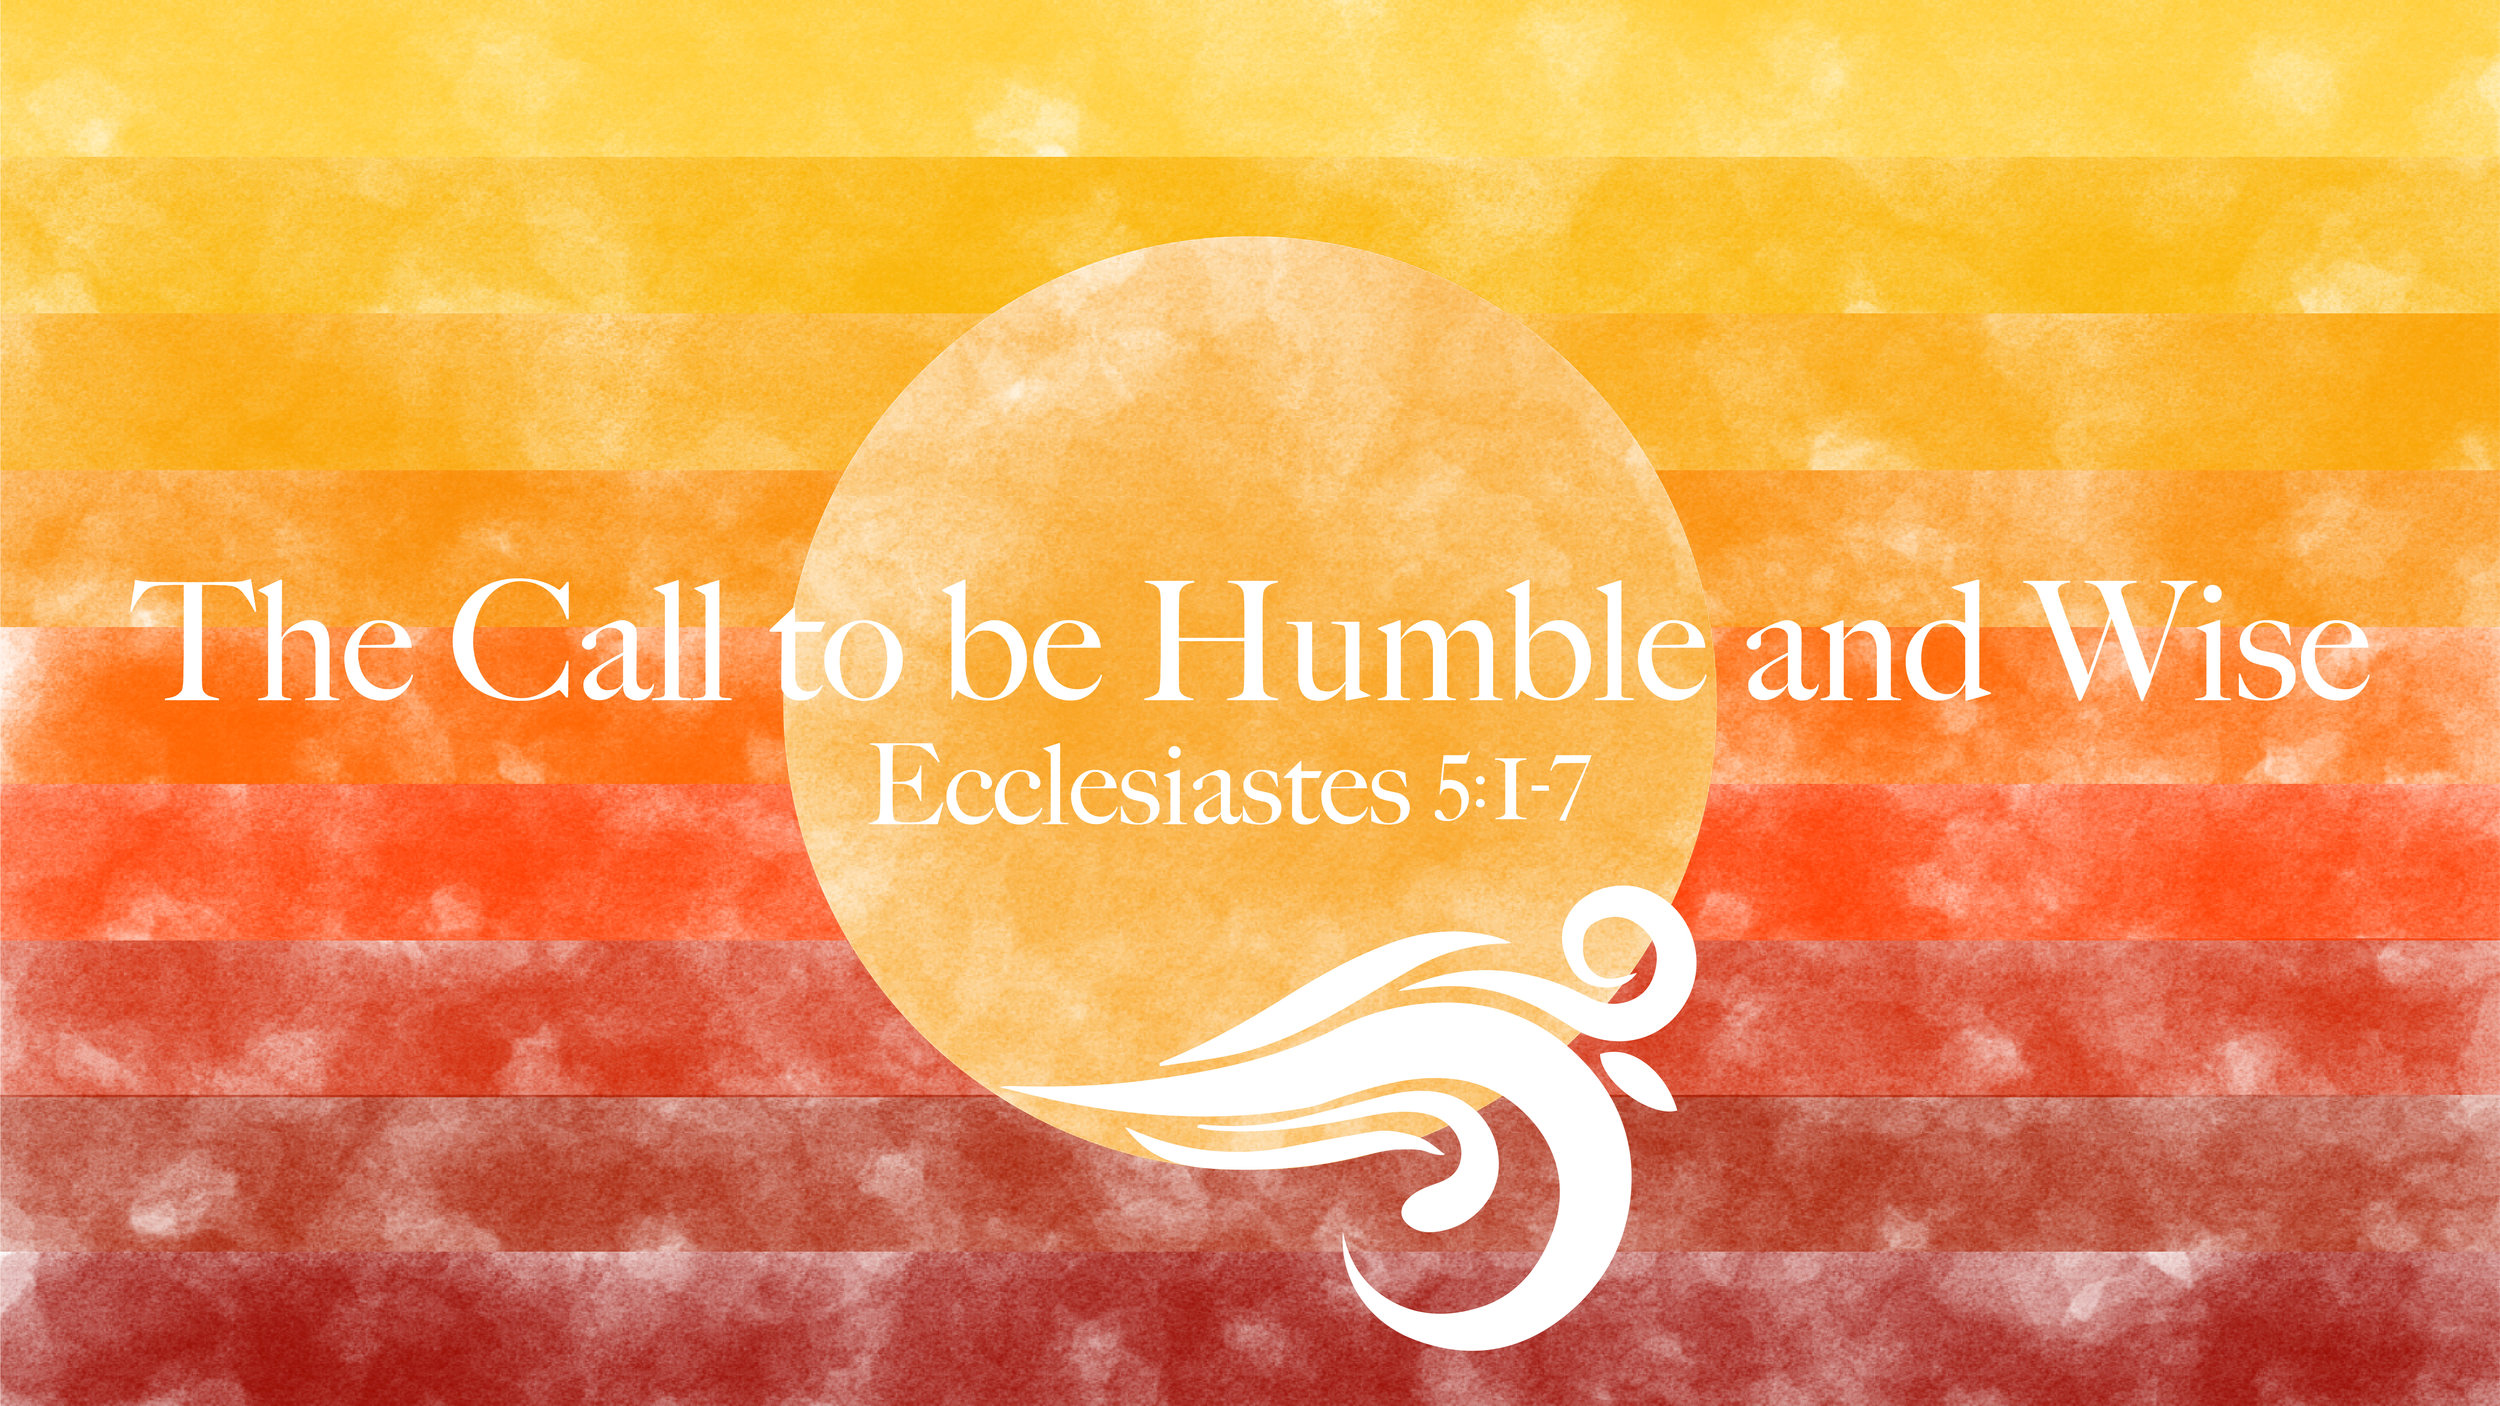 The Call to be Humble and Wise-06.jpg